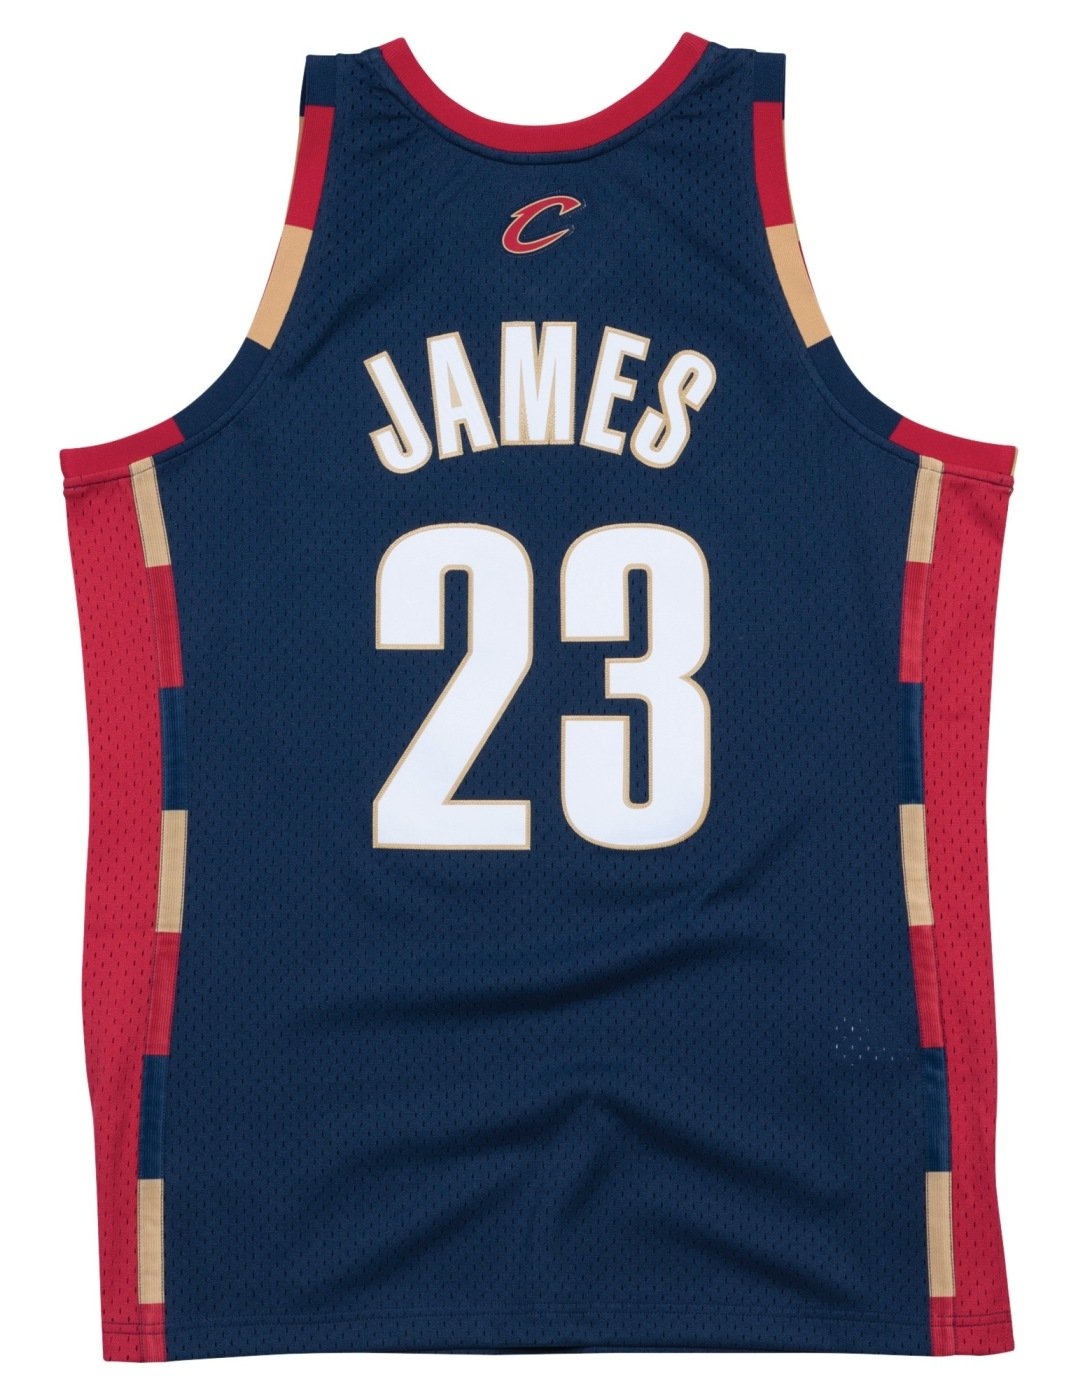 5279855f3ab Amazon.com : Lebron James Cleveland Cavaliers Mitchell and Ness Men's Navy  Throwback Jesey : Clothing